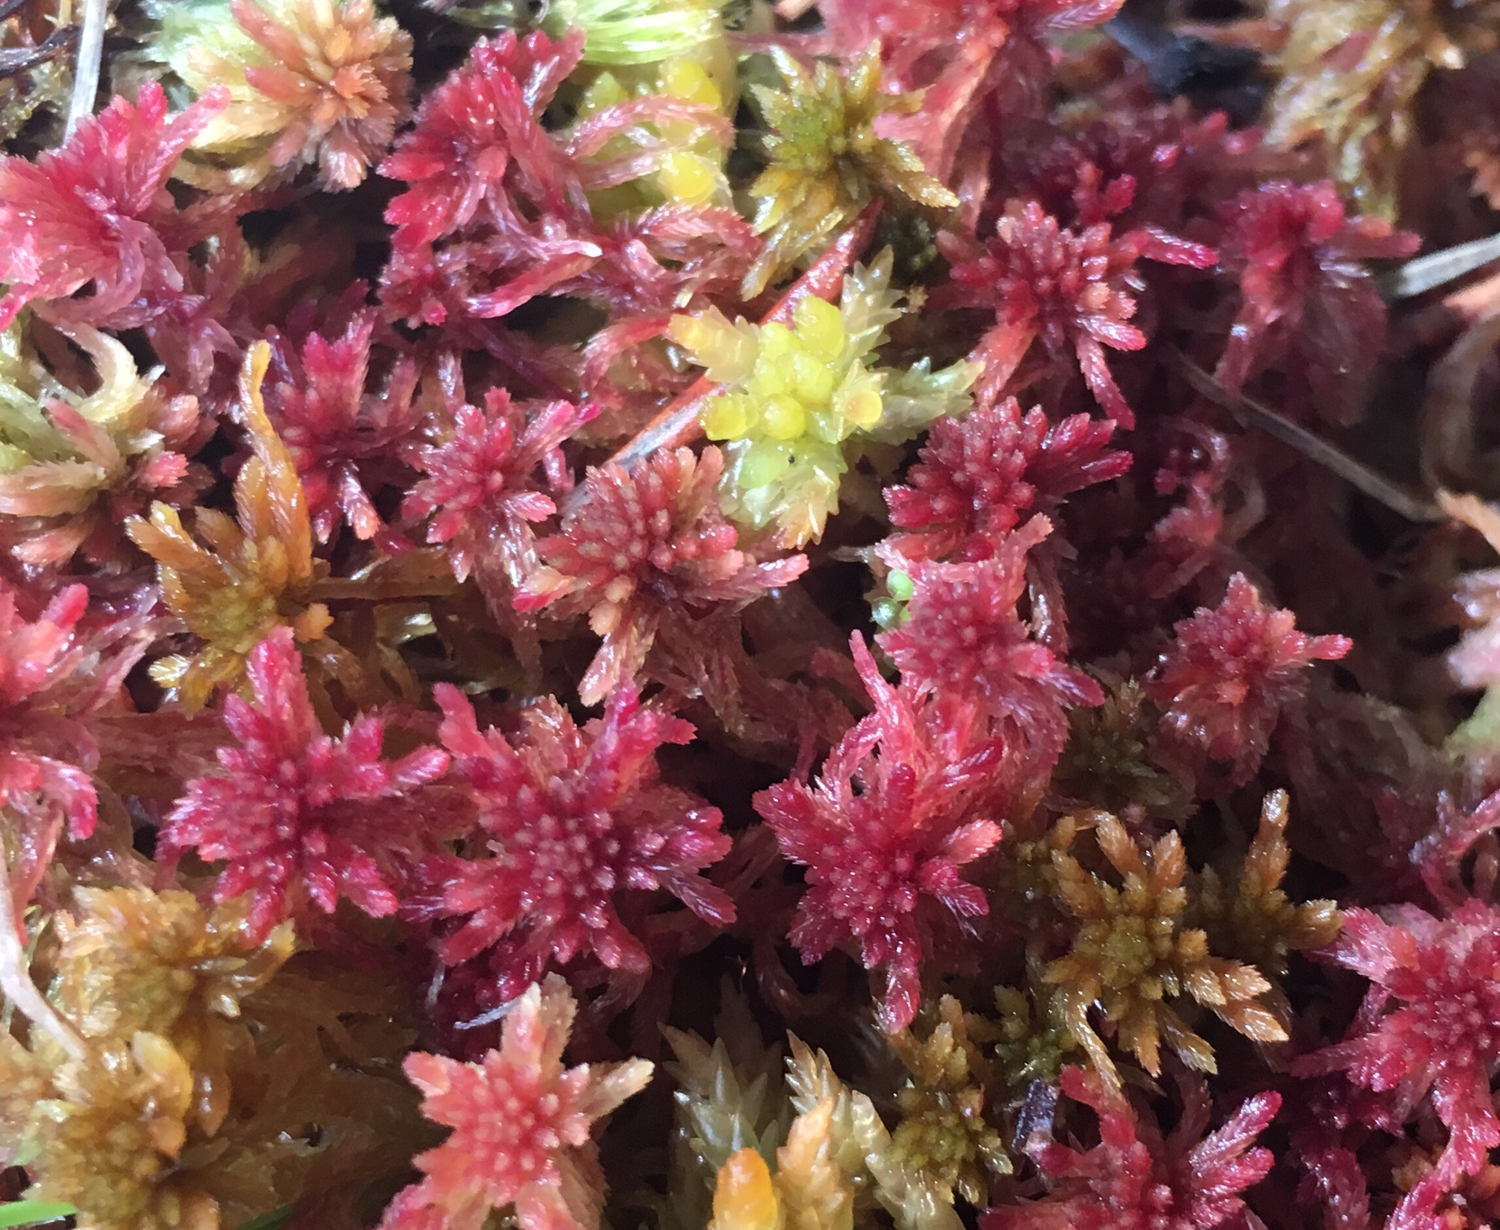 Live Green/ Red/ Brown Species Sphagnum Moss mix 125 grams